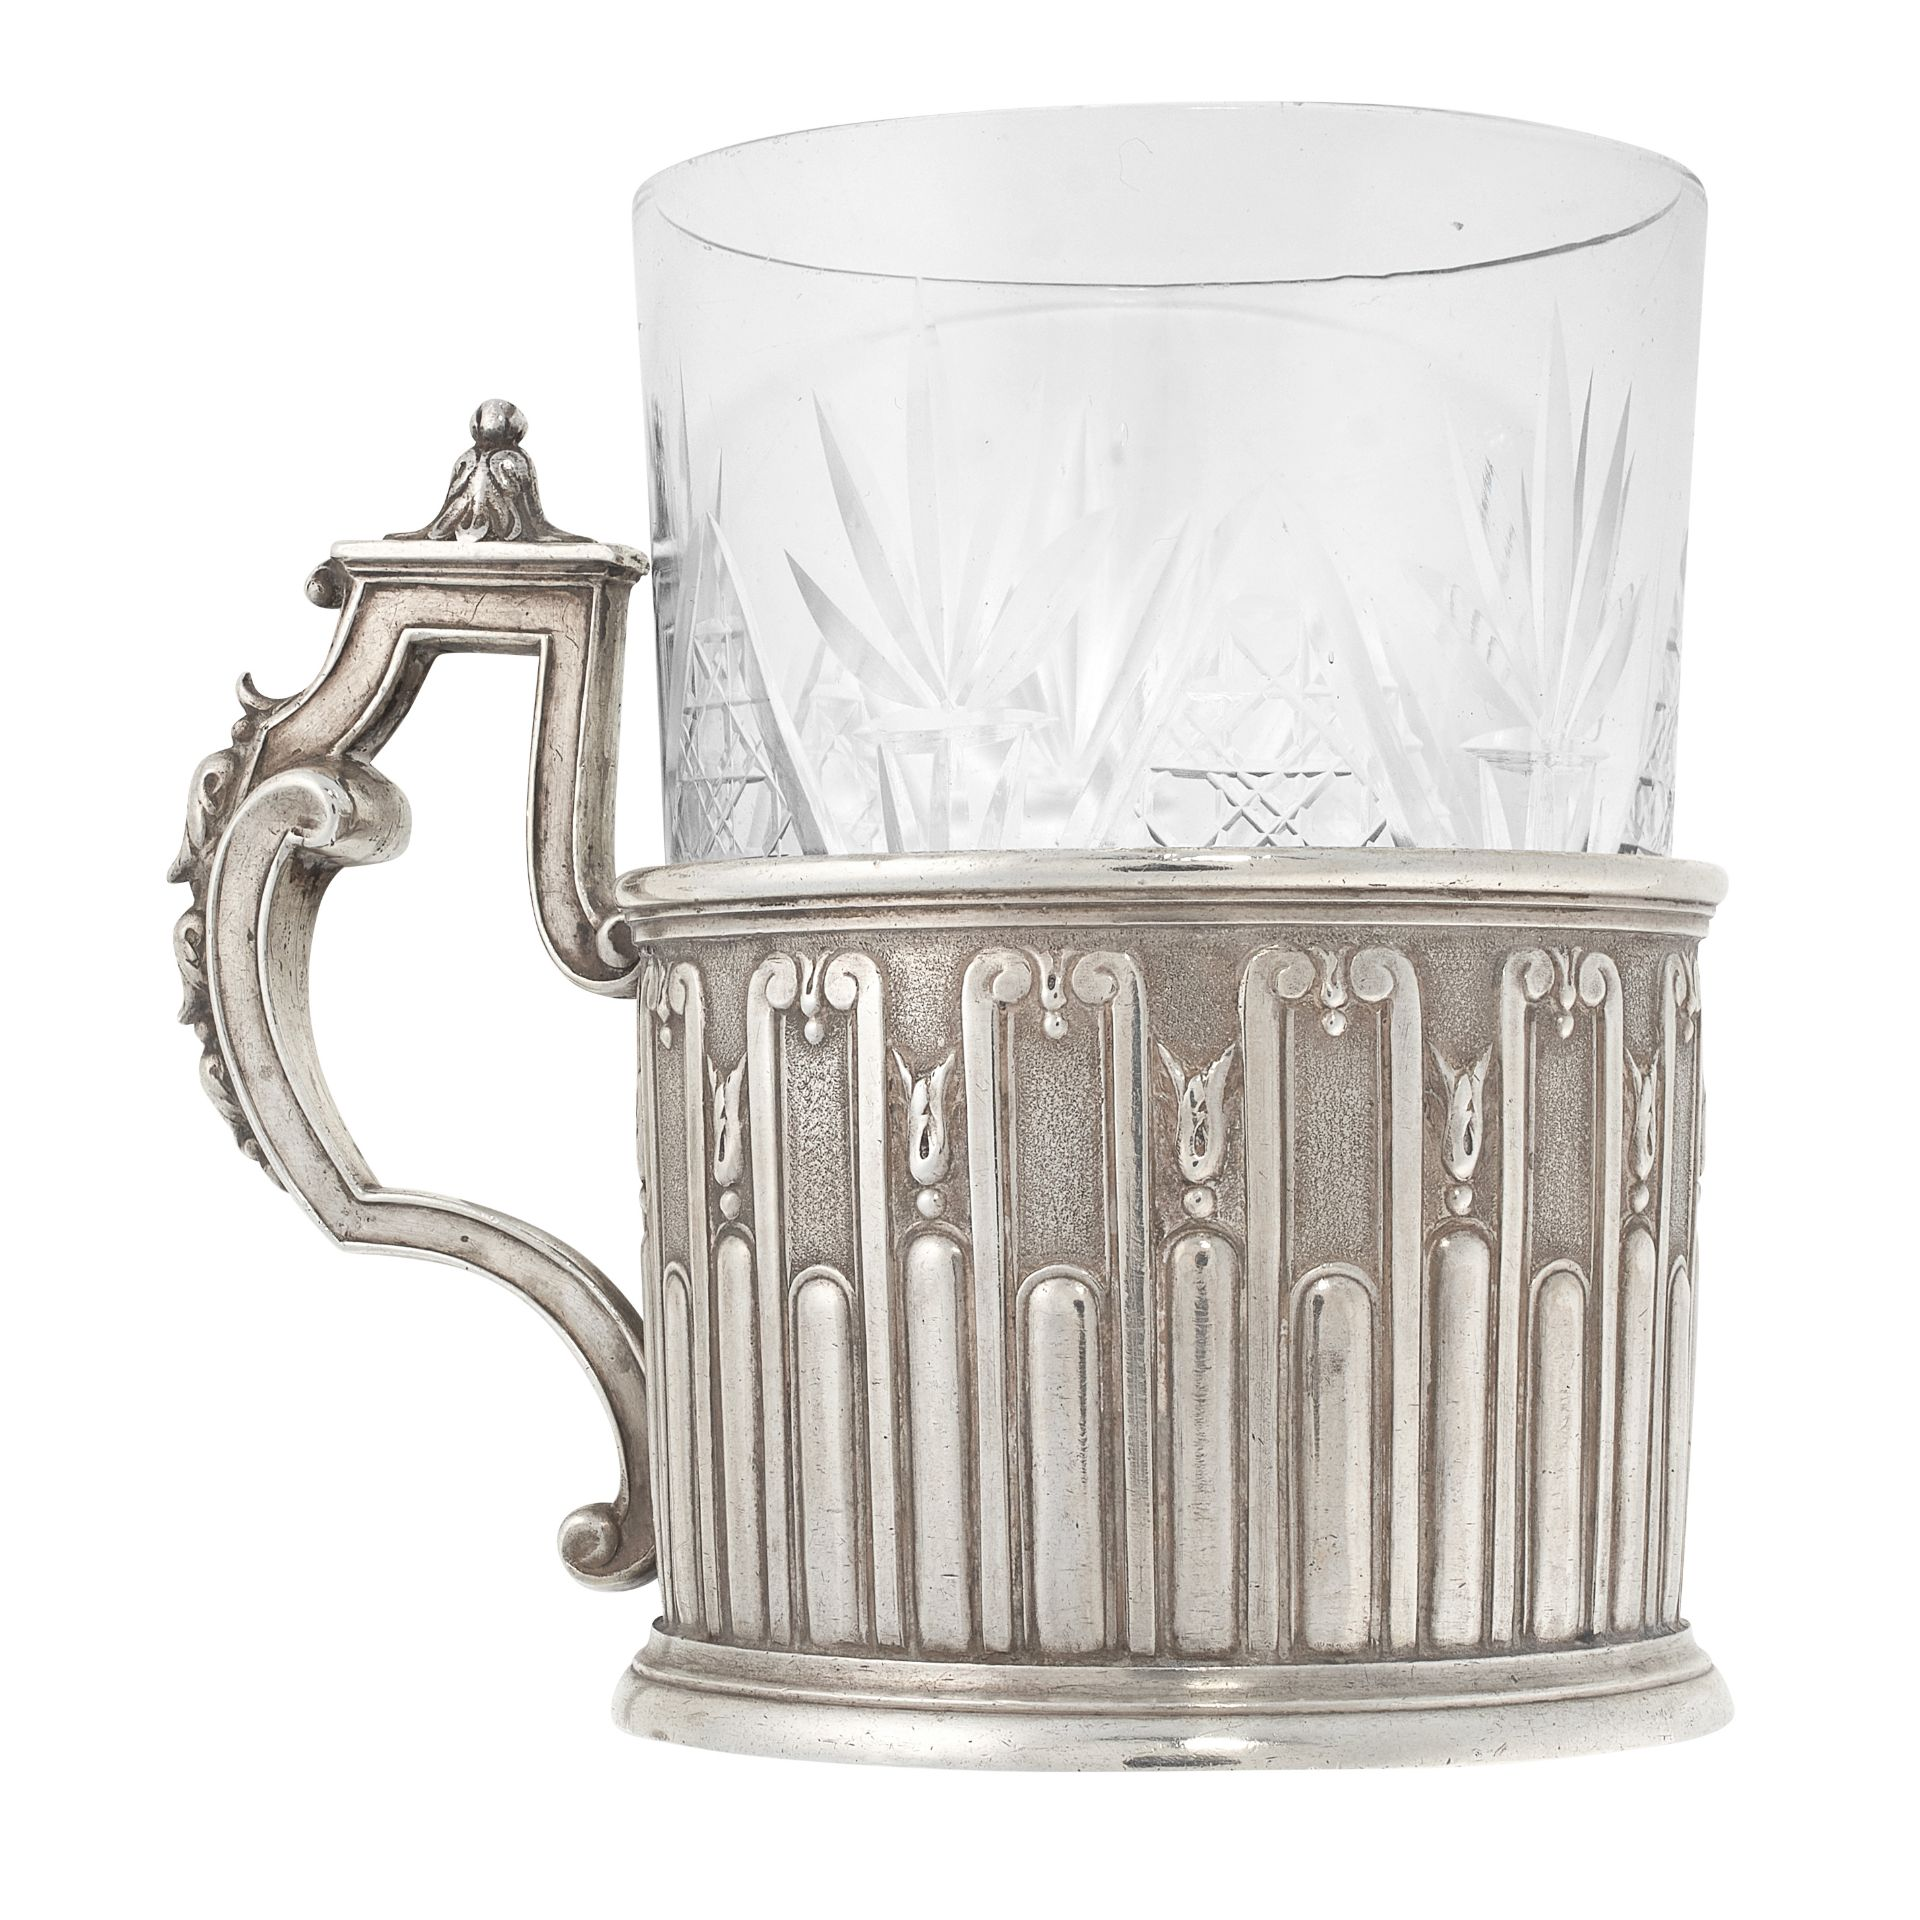 AN ANTIQUE IMPERIAL RUSSIAN TEA GLASS HOLDER, FABERGE MOSCOW CIRCA 1900 in 84 zolotnik silver, the